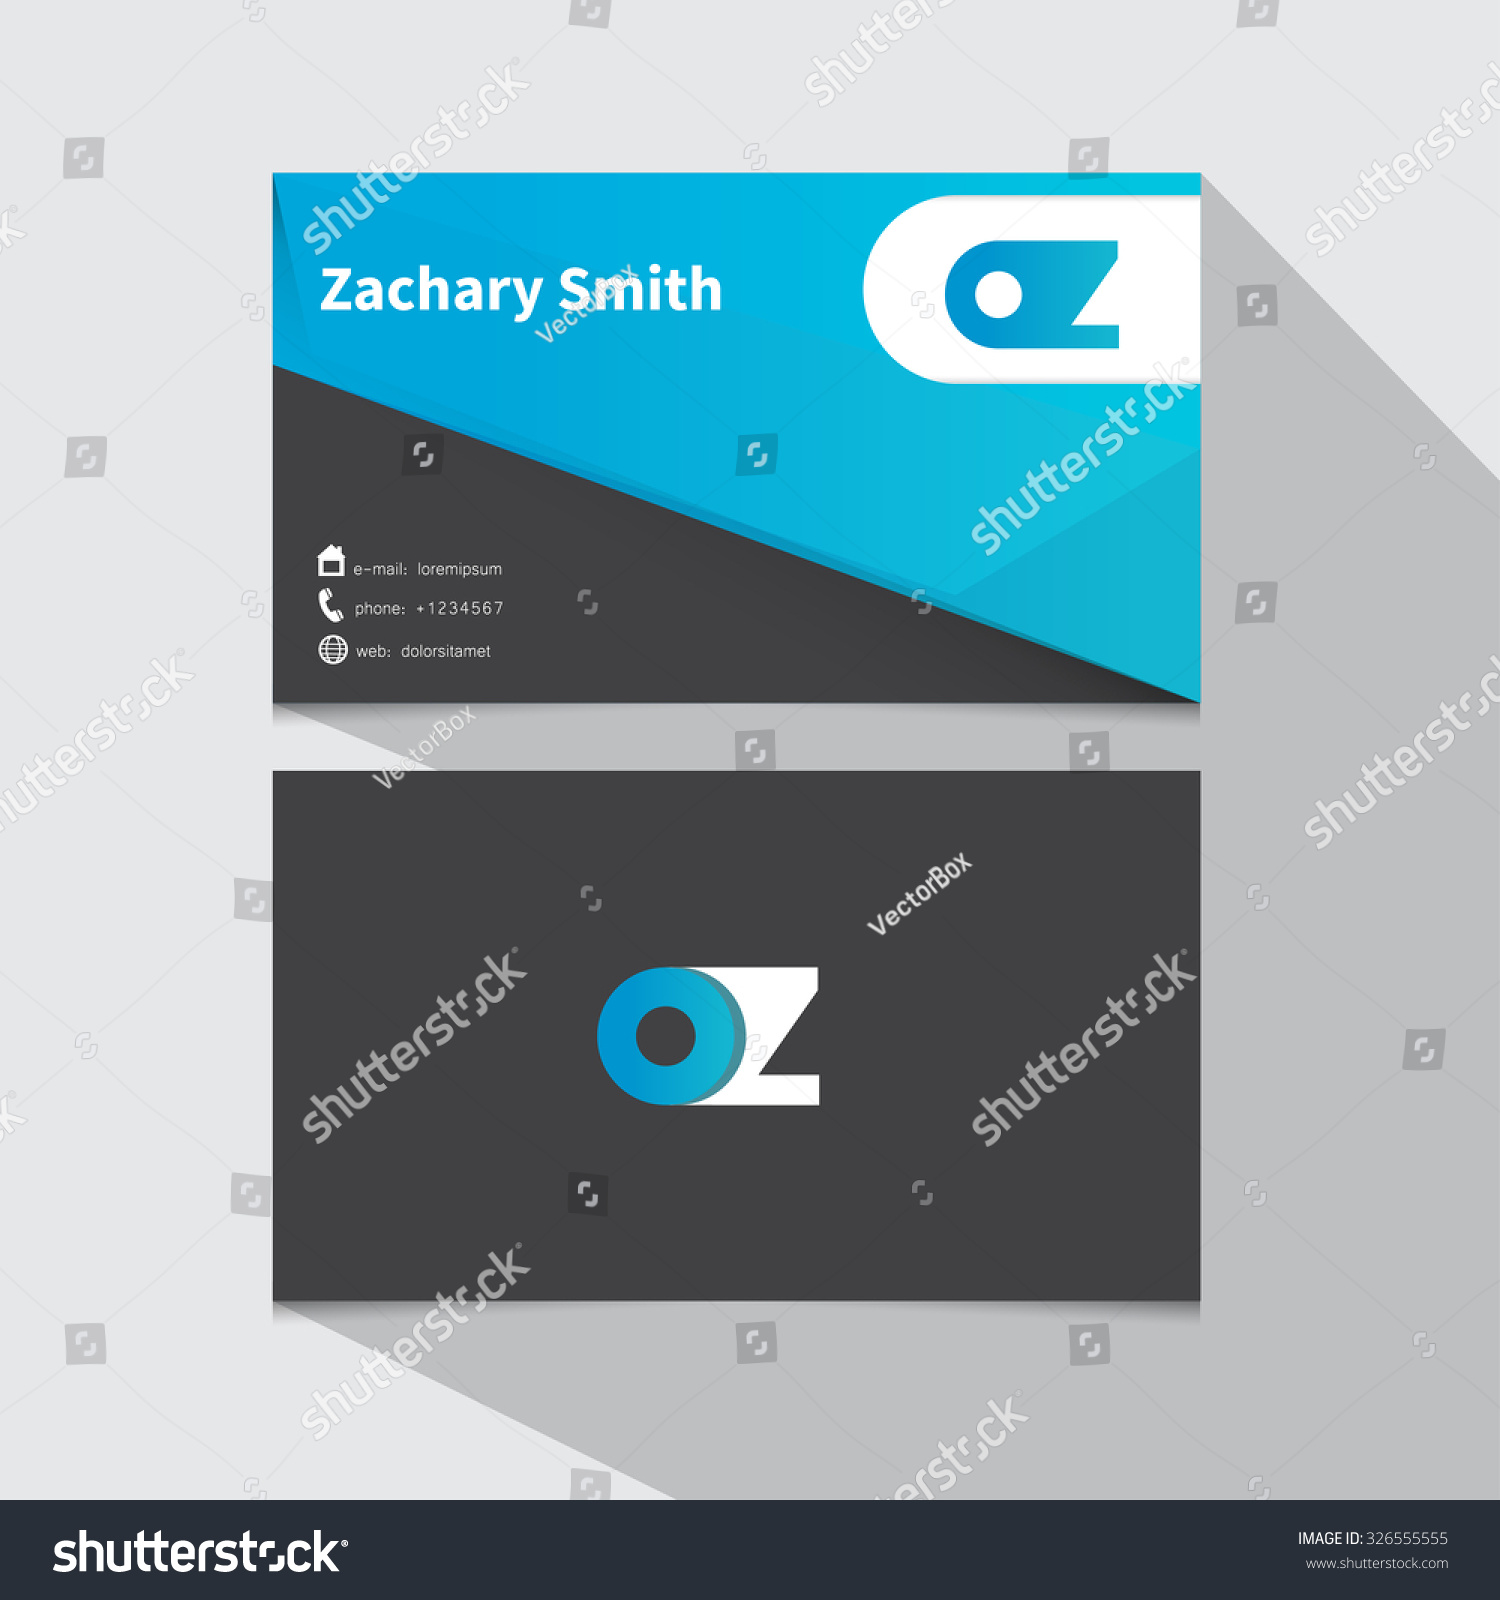 Excellent 1 Page Resumes Big 10 Envelope Template Indesign Clean 100 Day Plan Template 10x13 Envelope Template Youthful 16x20 Collage Template Soft18th Birthday Invitation Templates Minimal Corporate Business Card Template. Logo Design, Letter Z ..